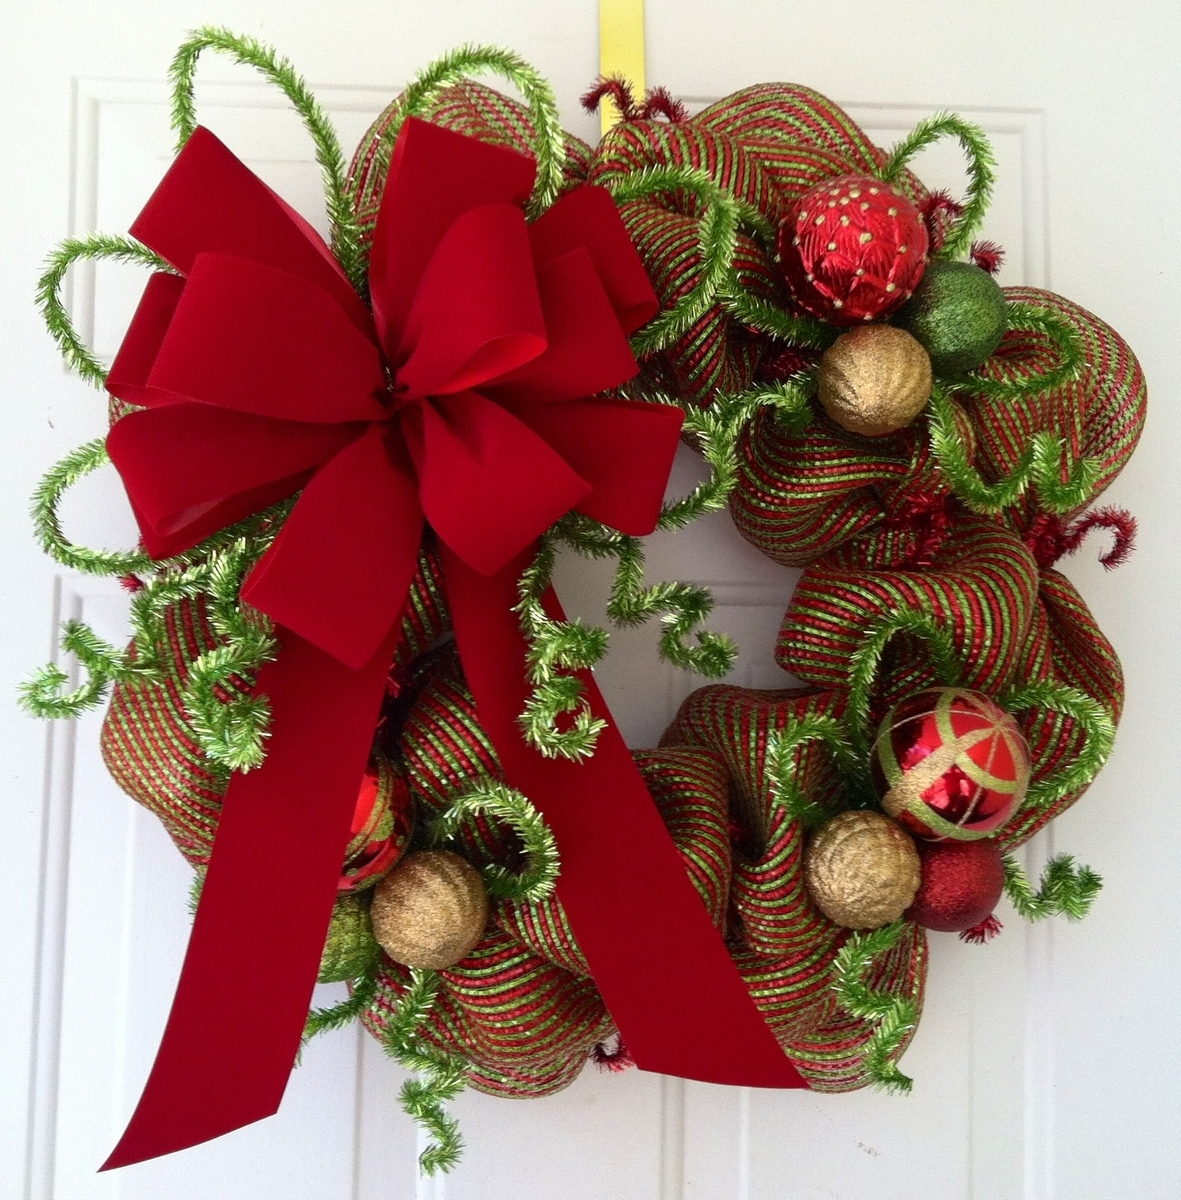 15 amazing homemade christmas wreath ideas page 7 of 16 for Amazing wreaths